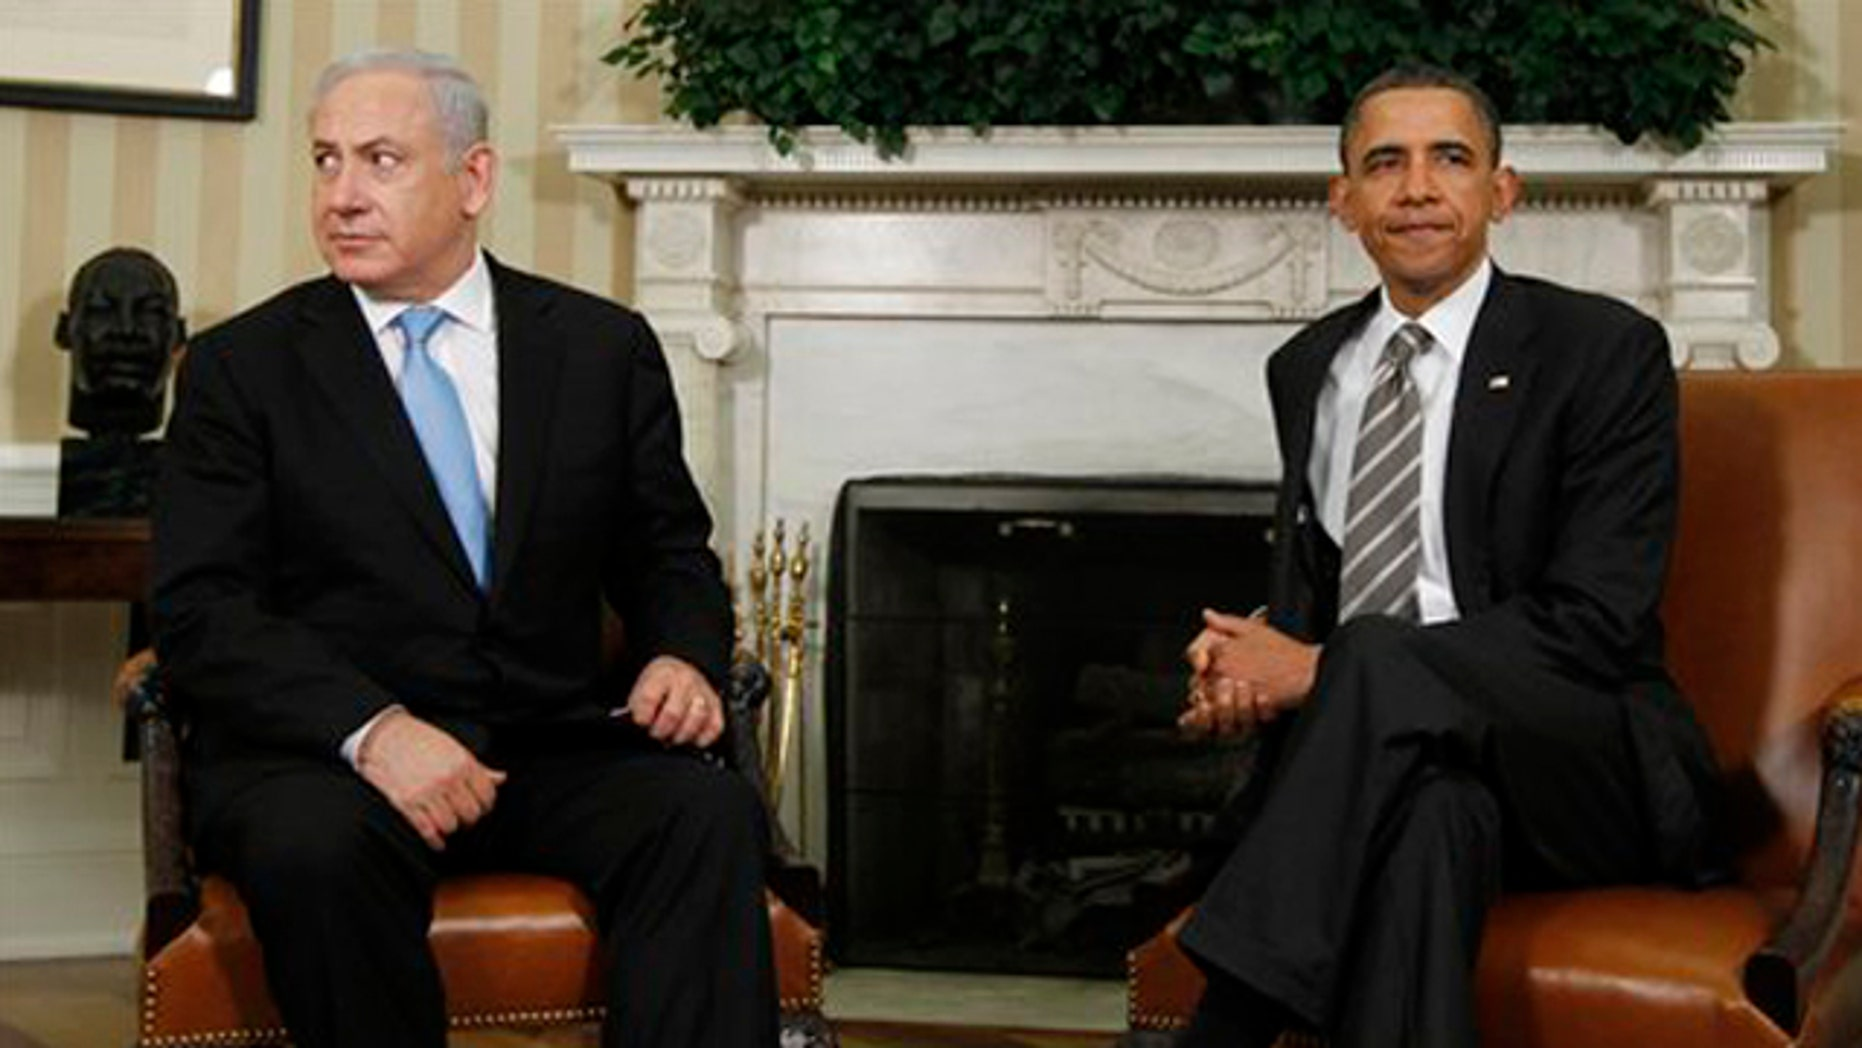 FILE: May 20, 2011: President Obama meets with Israeli Prime Minister Benjamin Netanyahu in the Oval Office in Washington .